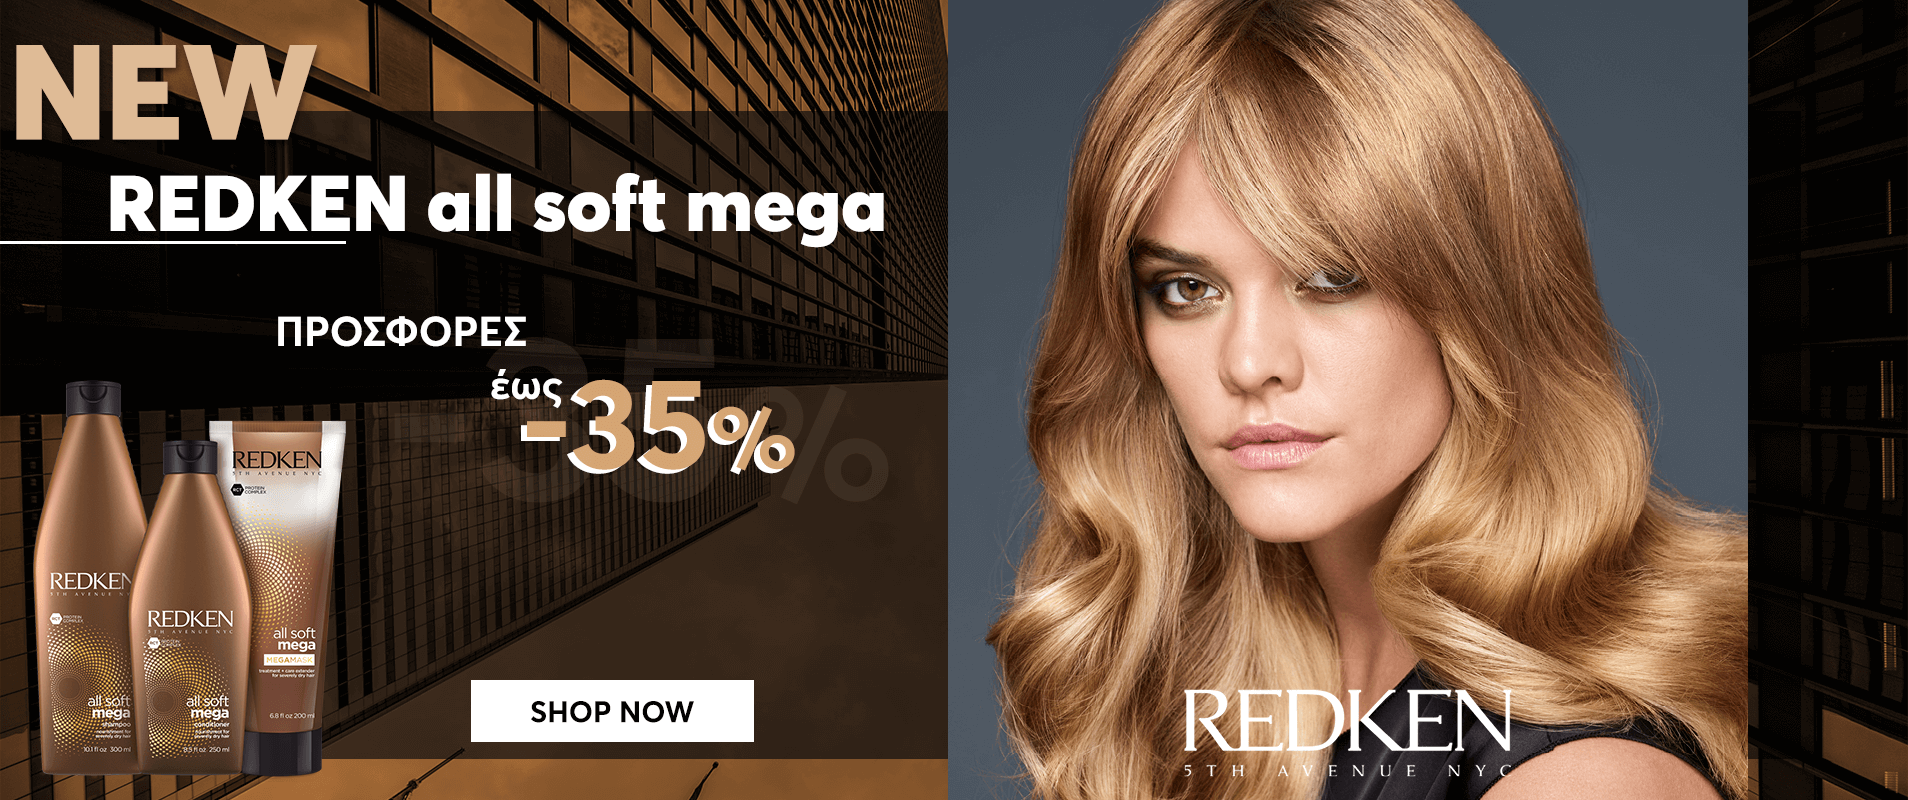 redken-MARCH-slider.png